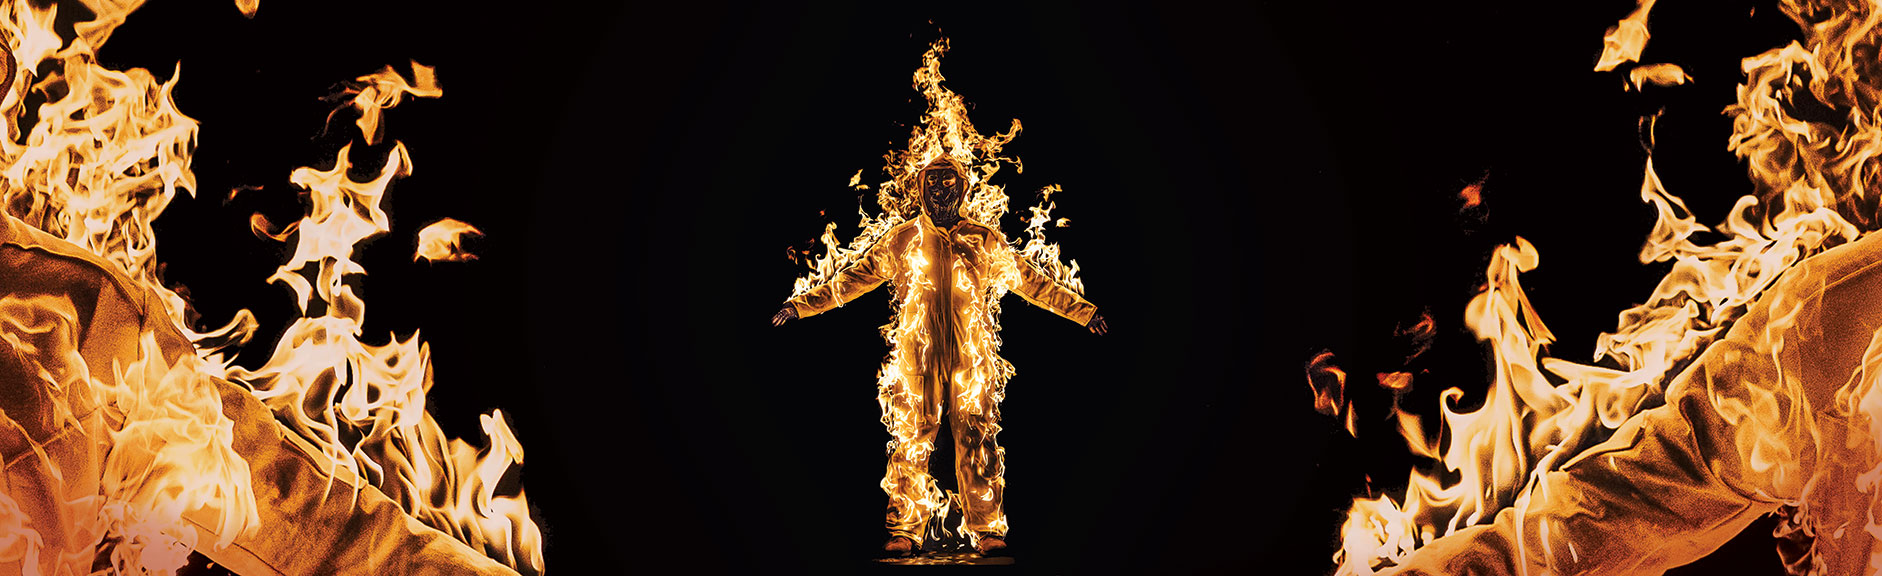 Cassils is lit on fire during their performance Inextinguishable Fire, performed on Nov 8, 2015 at the National Theatre, London, UK, as part of SPILL Festival of Performance. Photo credit: Cassils with Guido Mencari © Cassils 2015 Image courtesy of the artist and Ronald Feldman Fine Arts